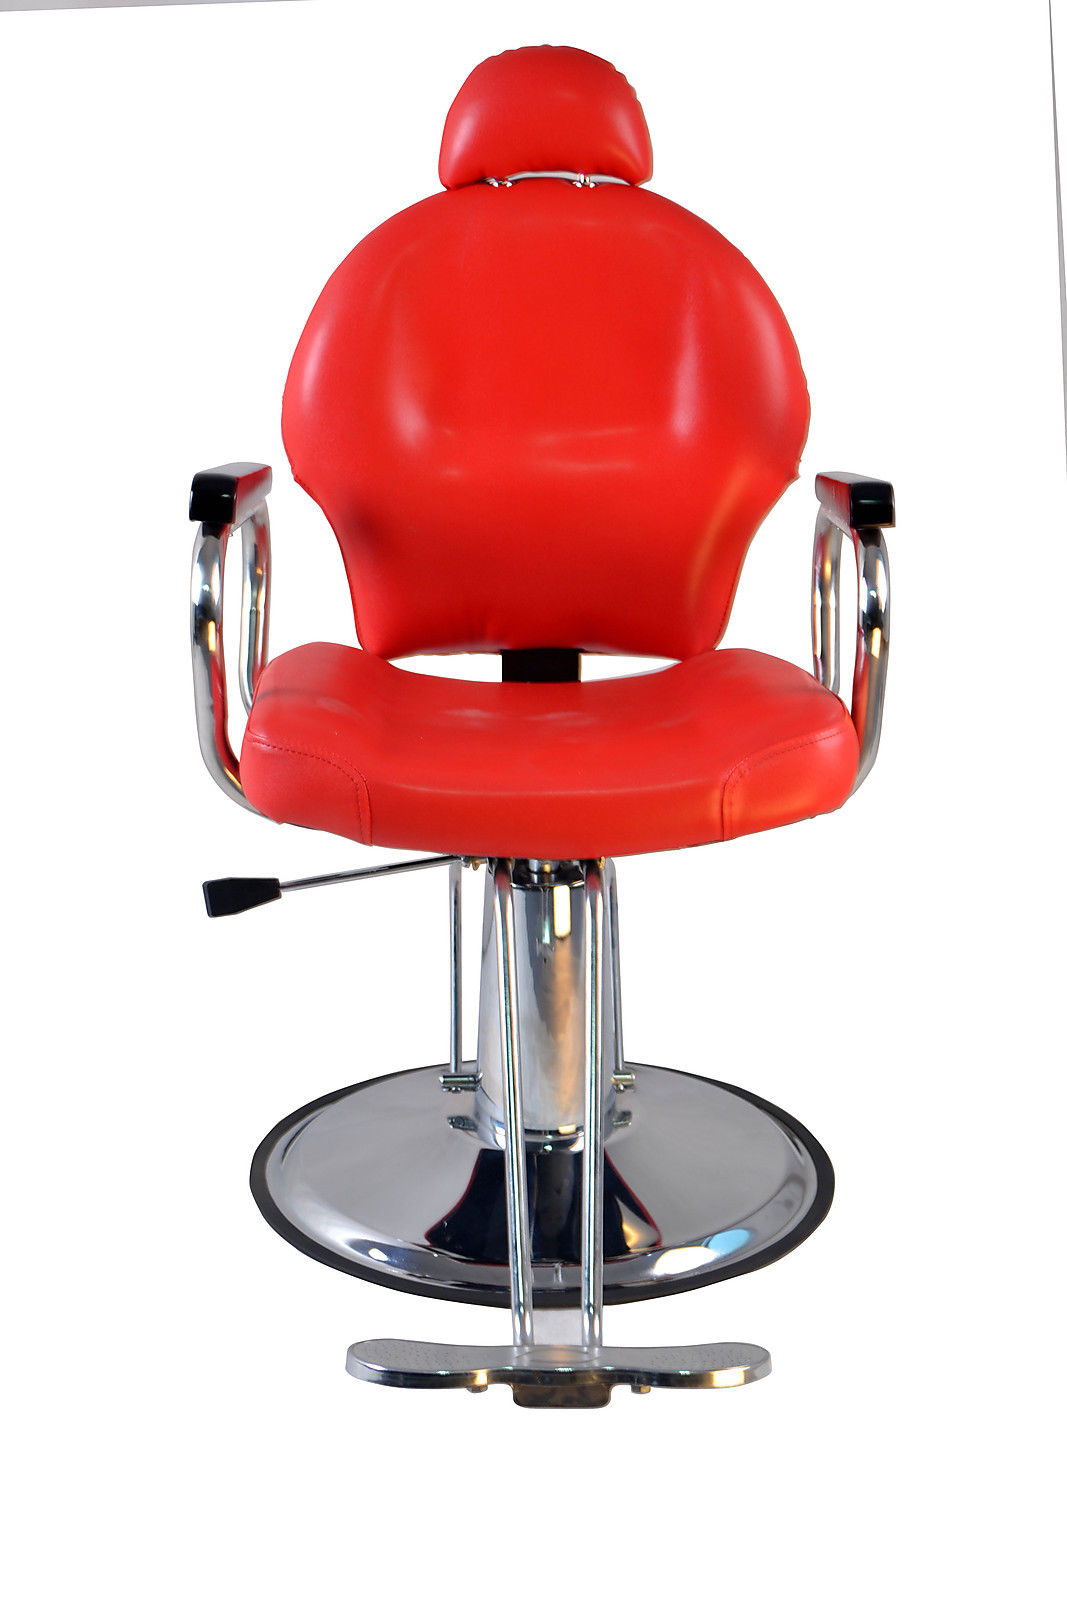 Barberpub reclining hydraulic barber chair salon styling for Hydraulic chairs beauty salon